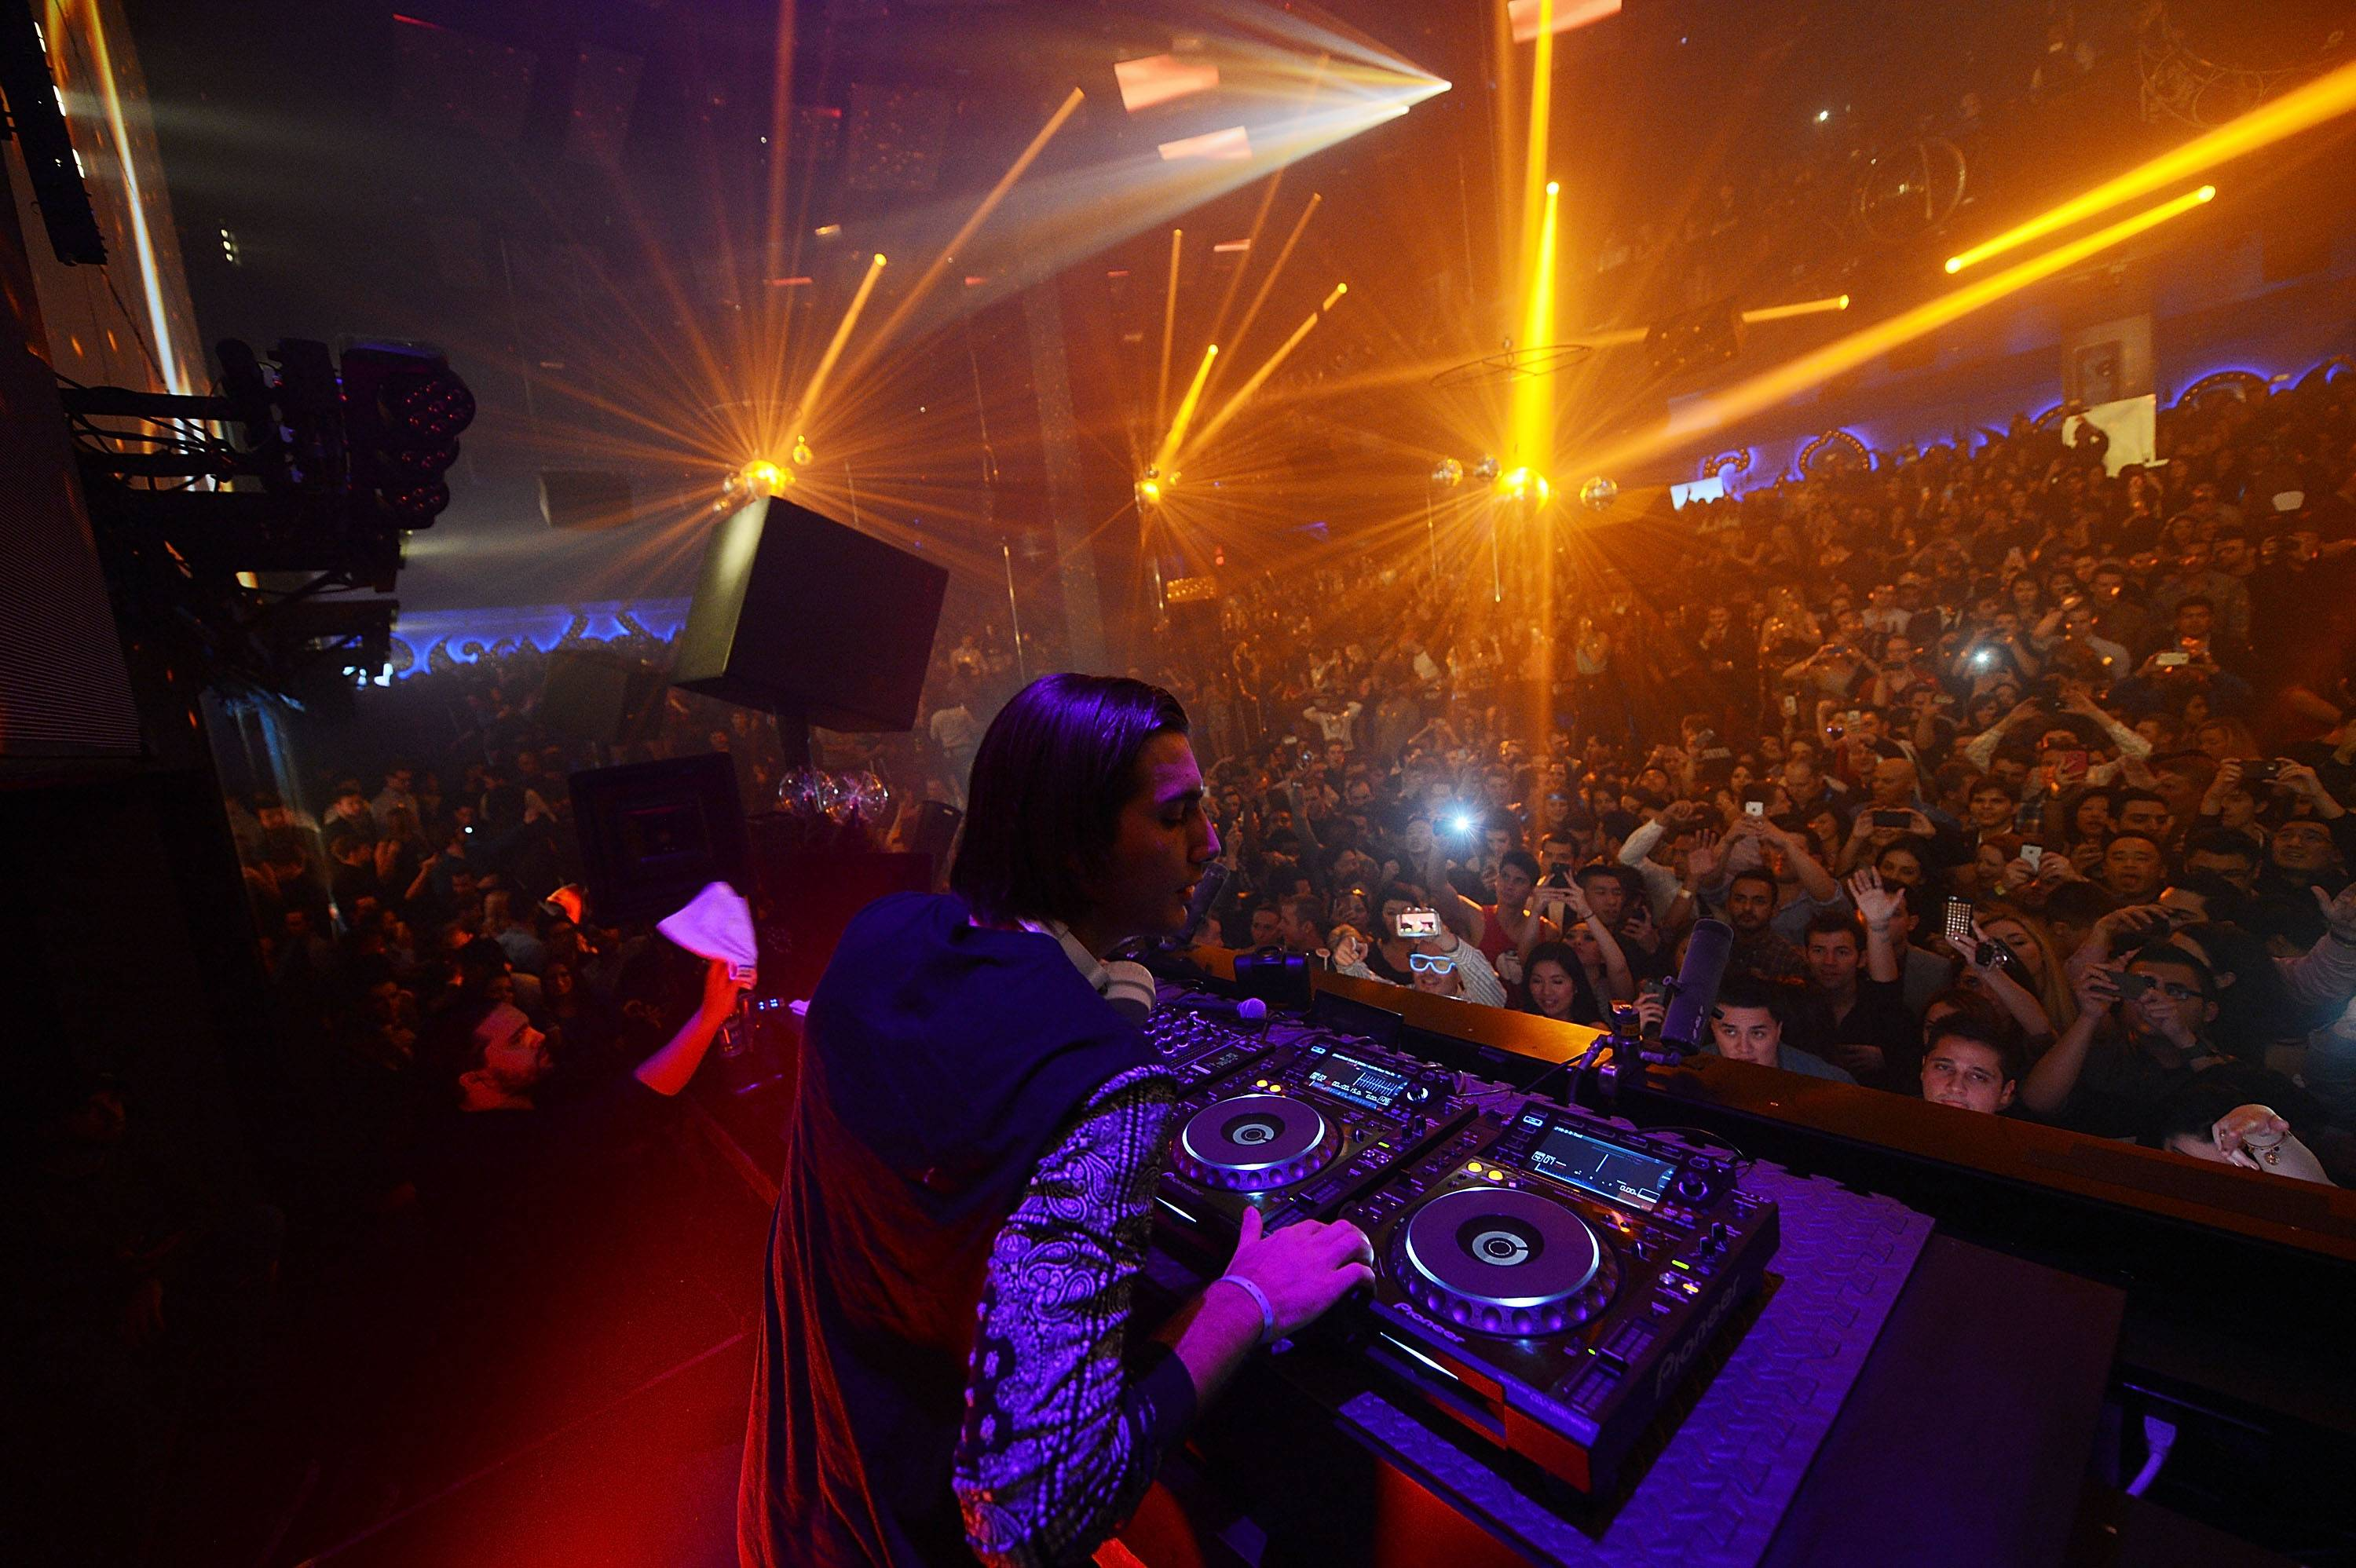 Light Nightclub Celebrates Alesso's Grammy Nomination During New Years Festivities At Light Nightclub Inside Mandalay Bay Hotel And Casino